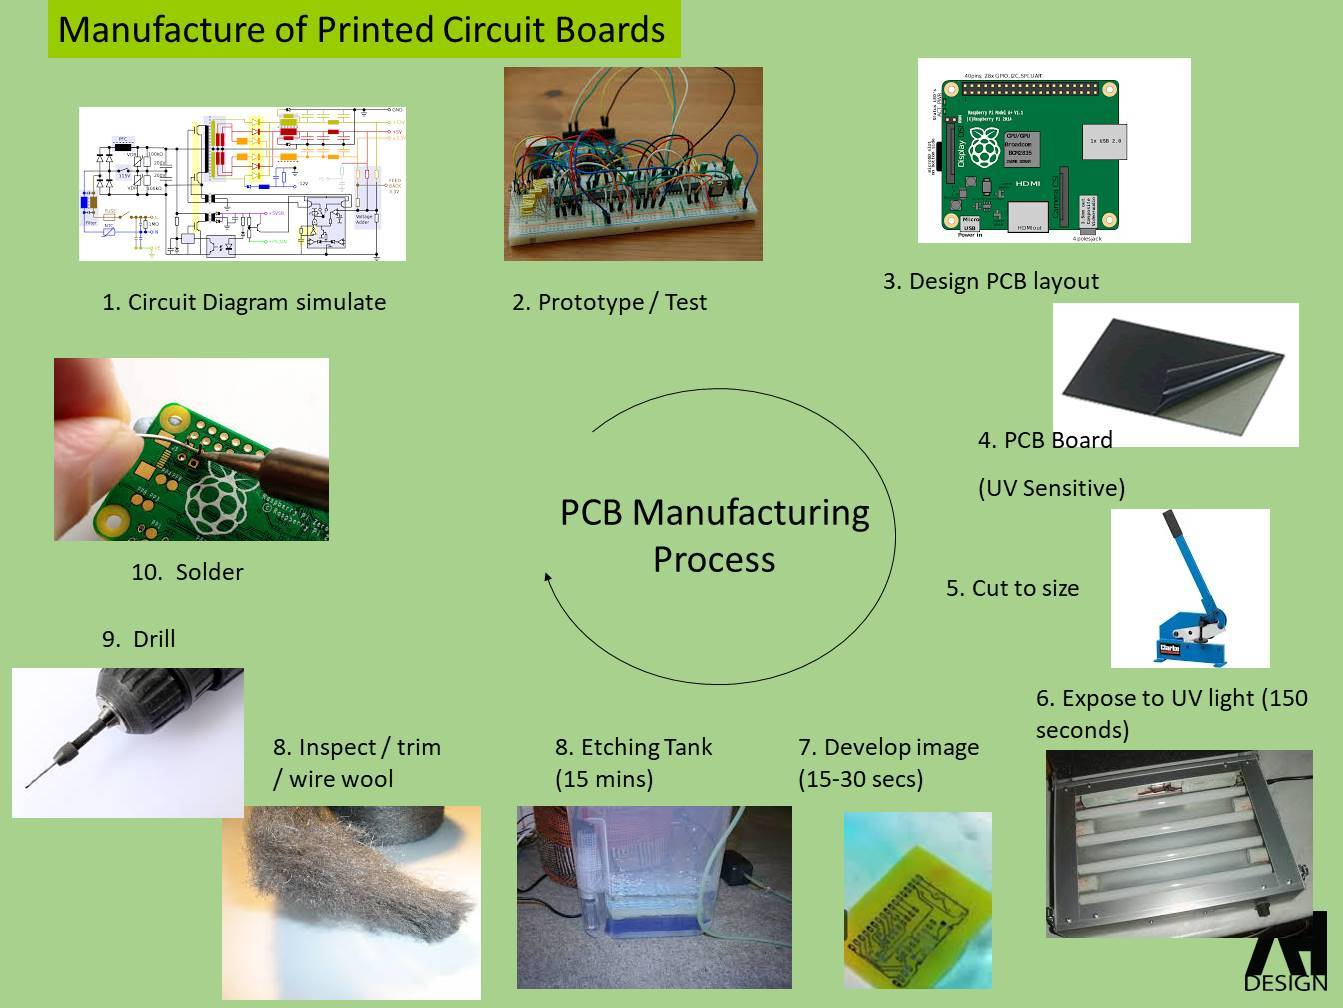 Electronics Bundle By Andrewh93 Teaching Resources Tes Circuit Board Prototyping Part 1 Exposing Developing Etching And